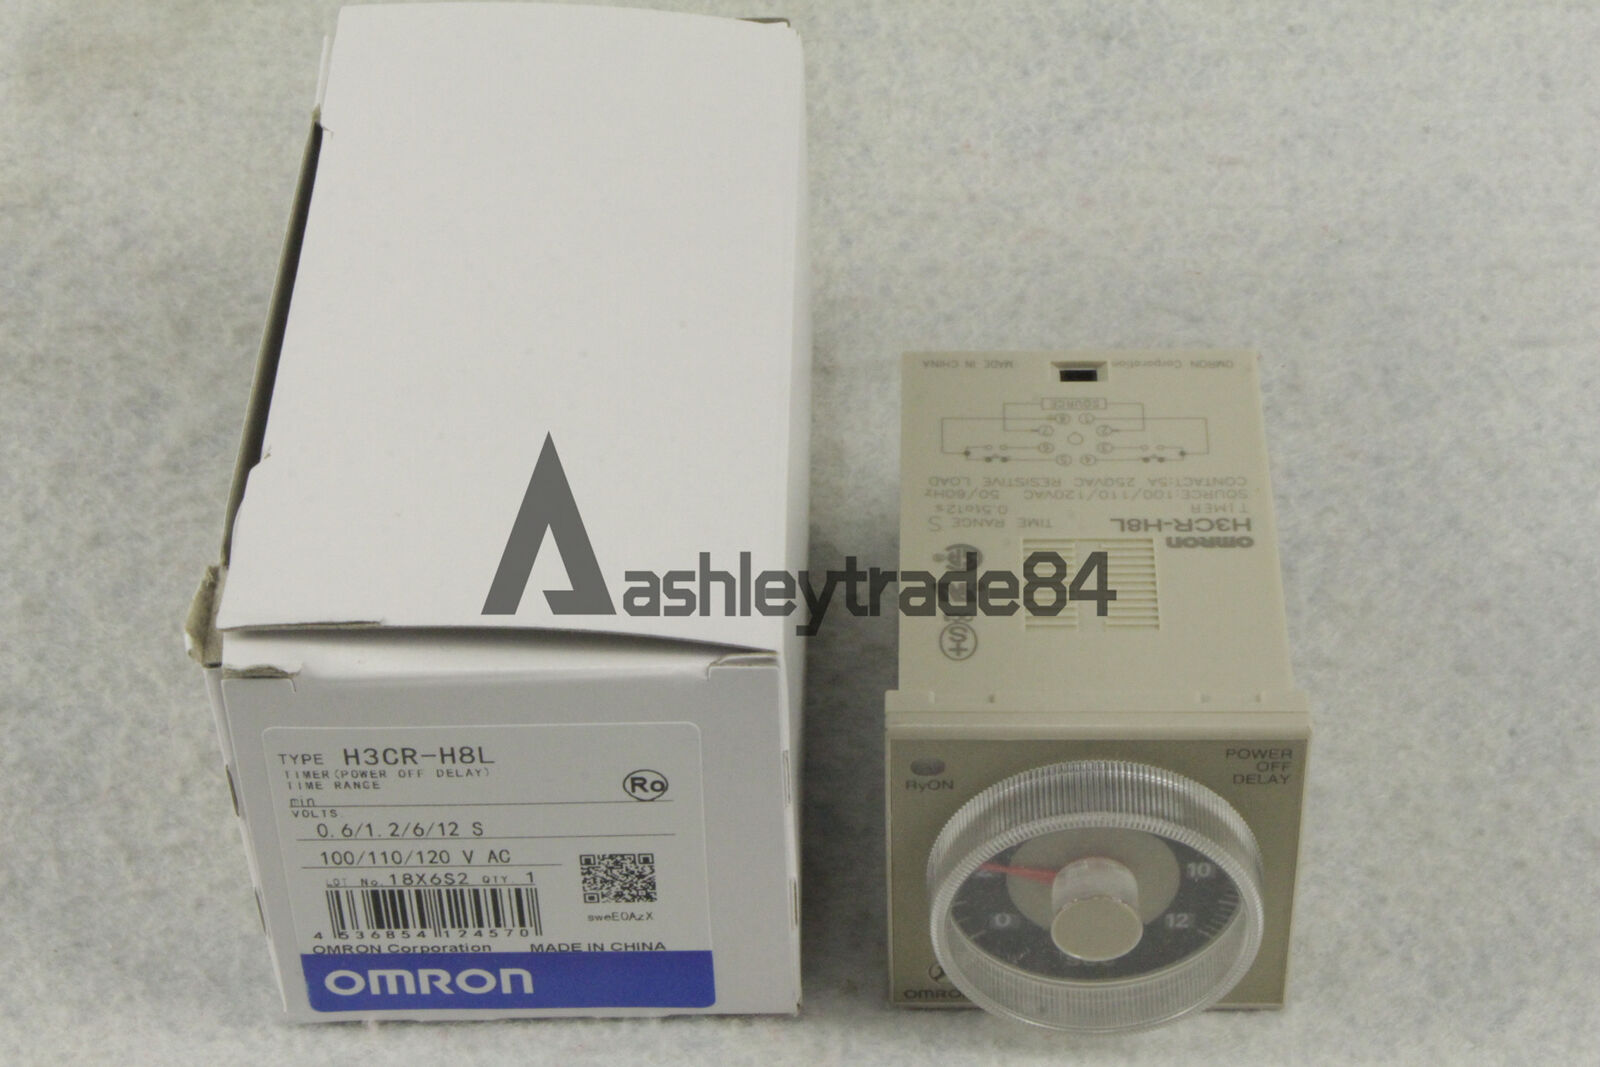 Omron H3CR-H8L Timer Power OFF Delay 100-120VAC NEW IN BOX